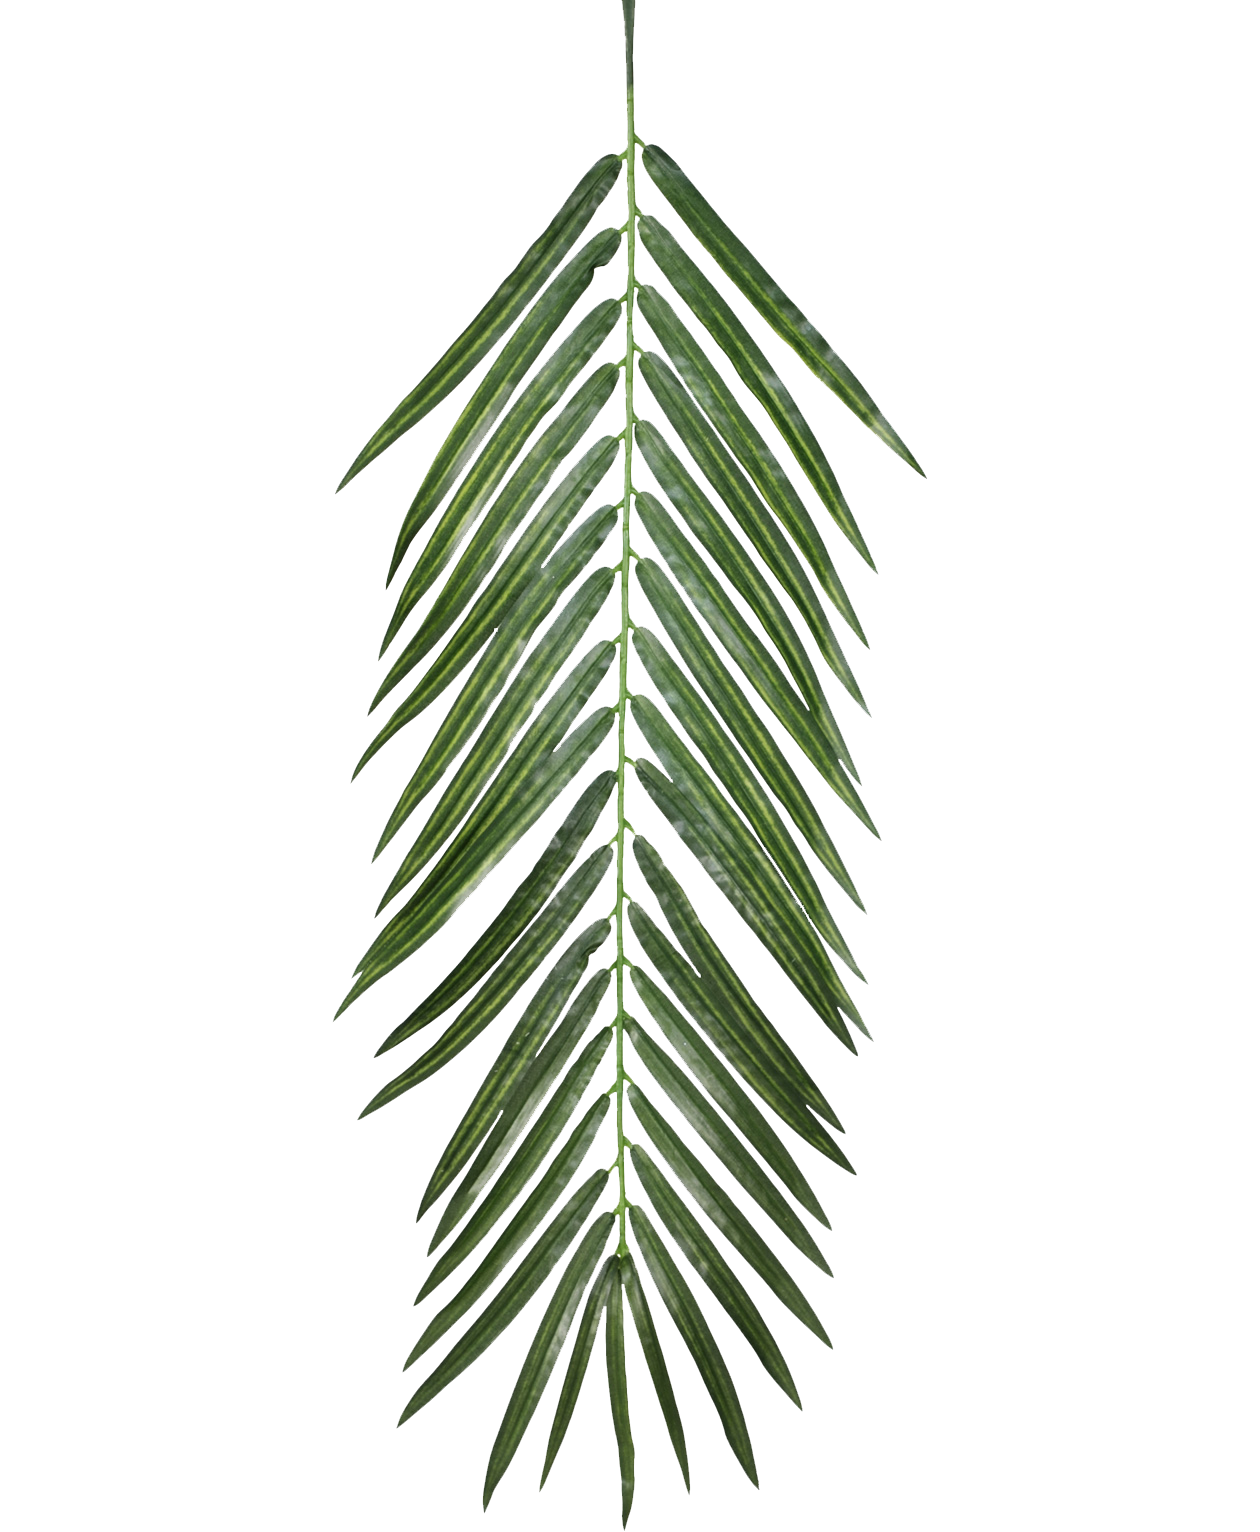 Palm leaf texture png. Plant opacity mapping leaves